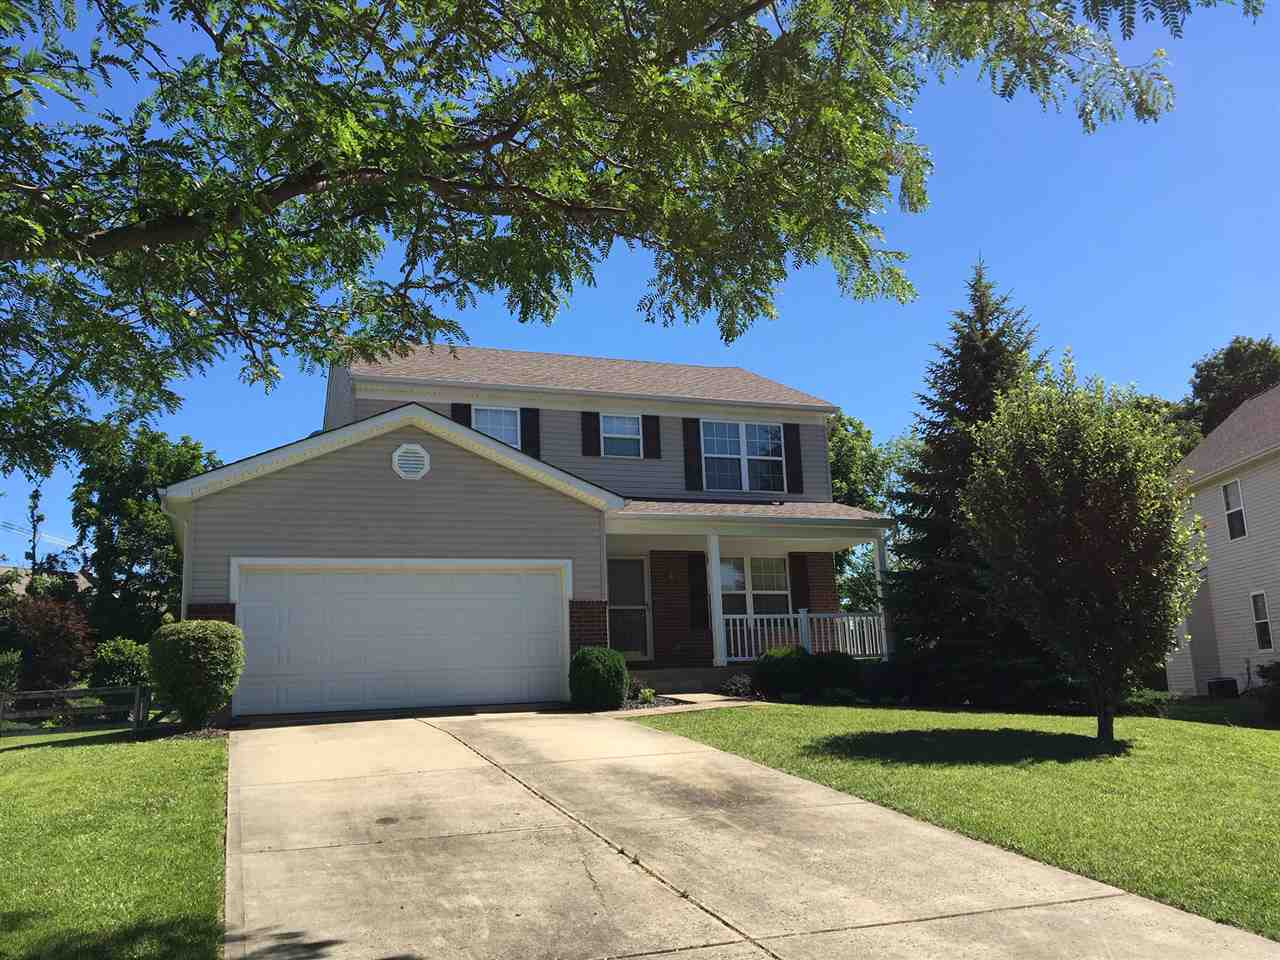 Photo 1 for 7405 Cumberland Cir Florence, KY 41042